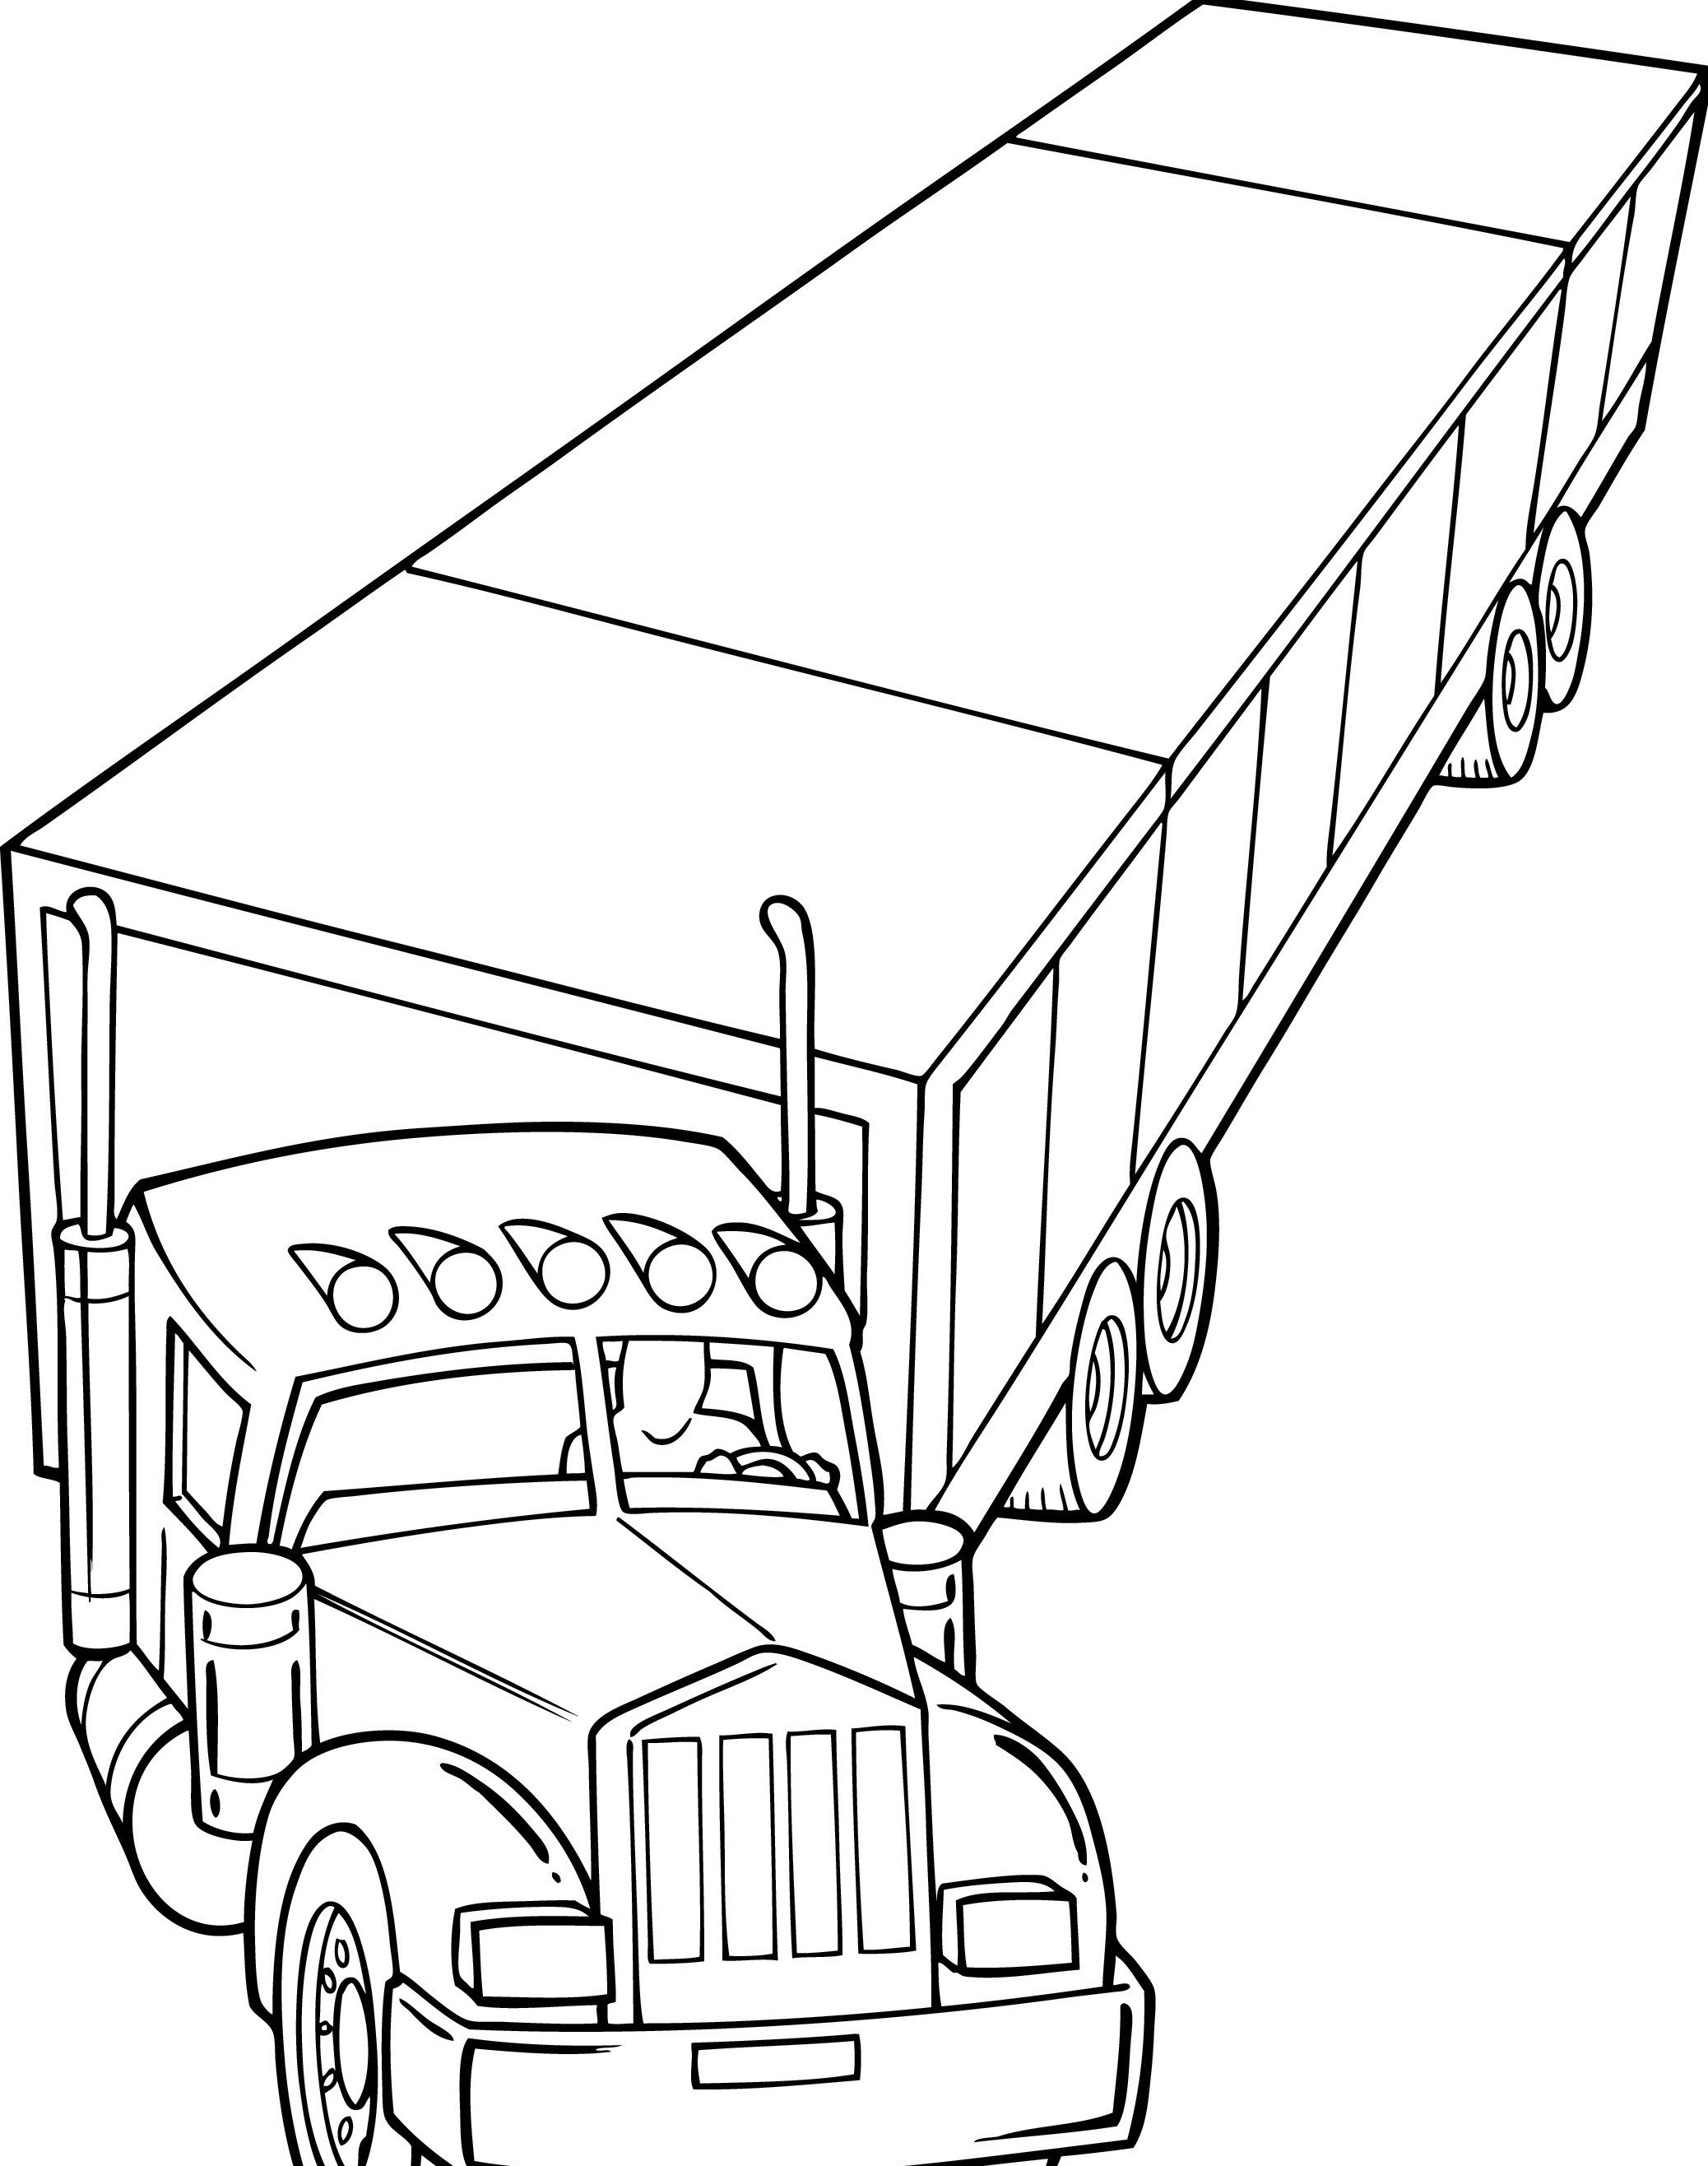 eighteen wheeler coloring pages - photo#4